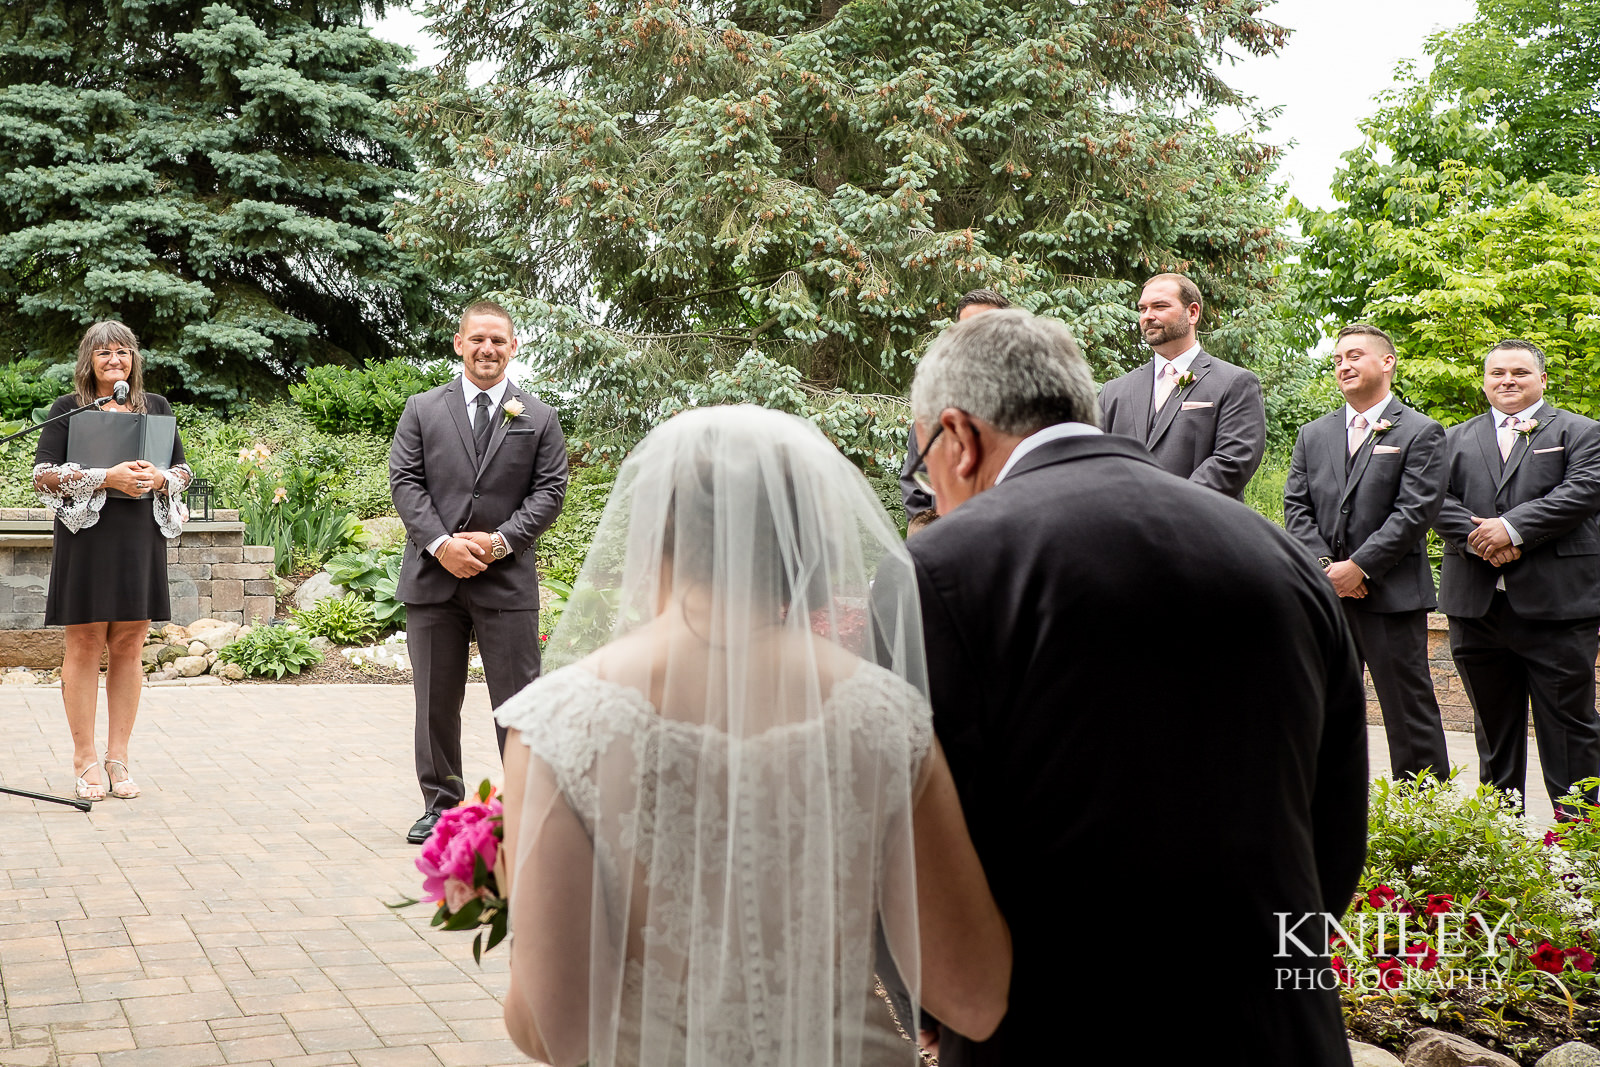 052 - Ravenwood Golf Club wedding pictures - Rochester NY - Kniley Photography - XT2A0770.jpg